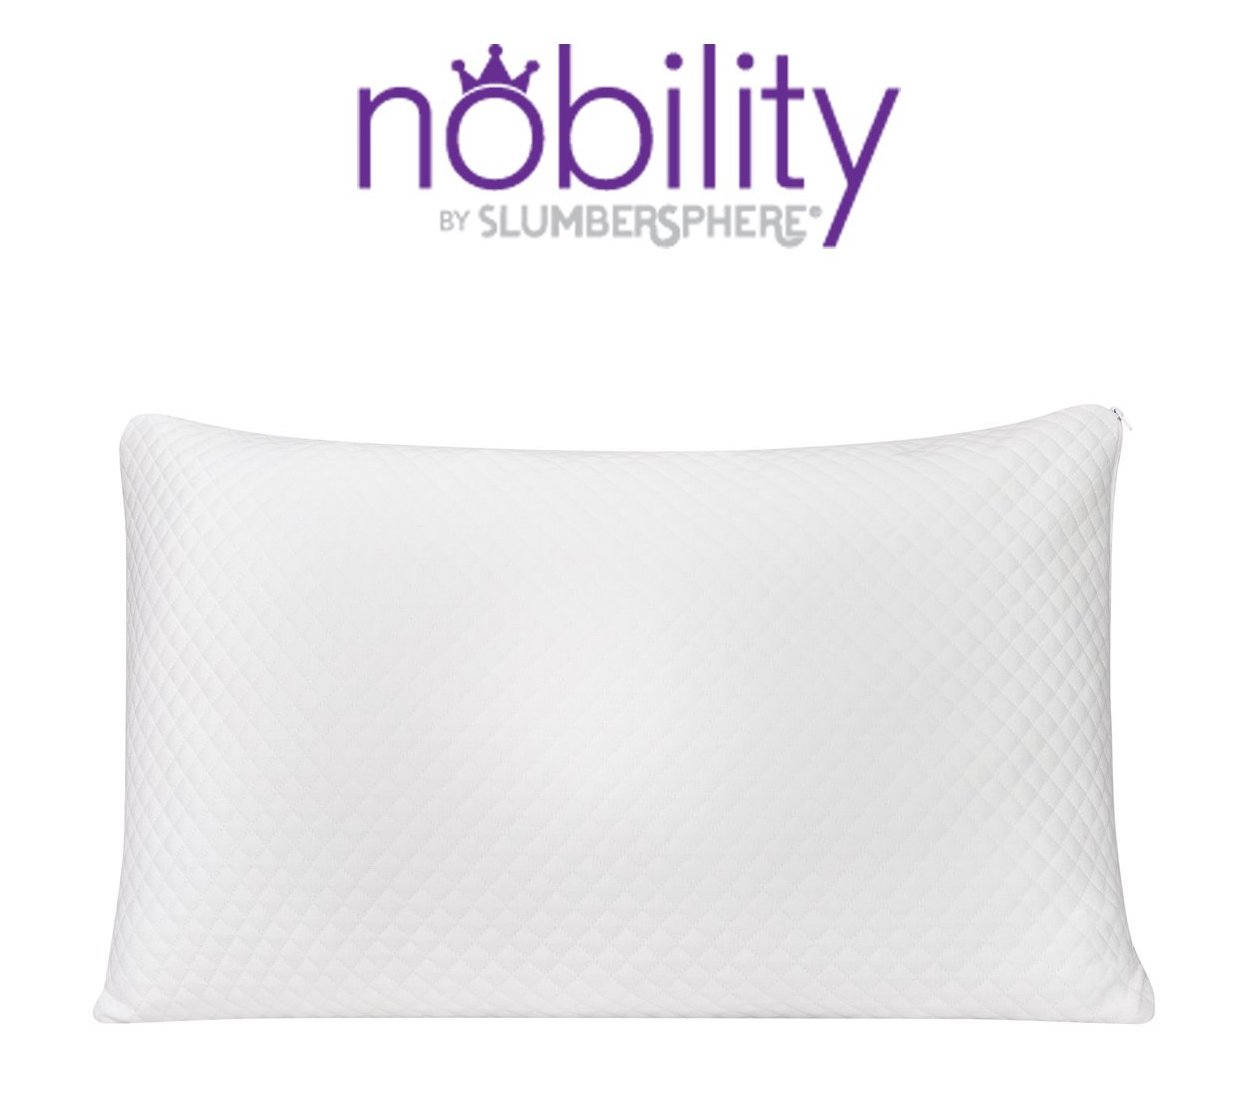 Slumbershield Nobility Pillow Standard Queen Size